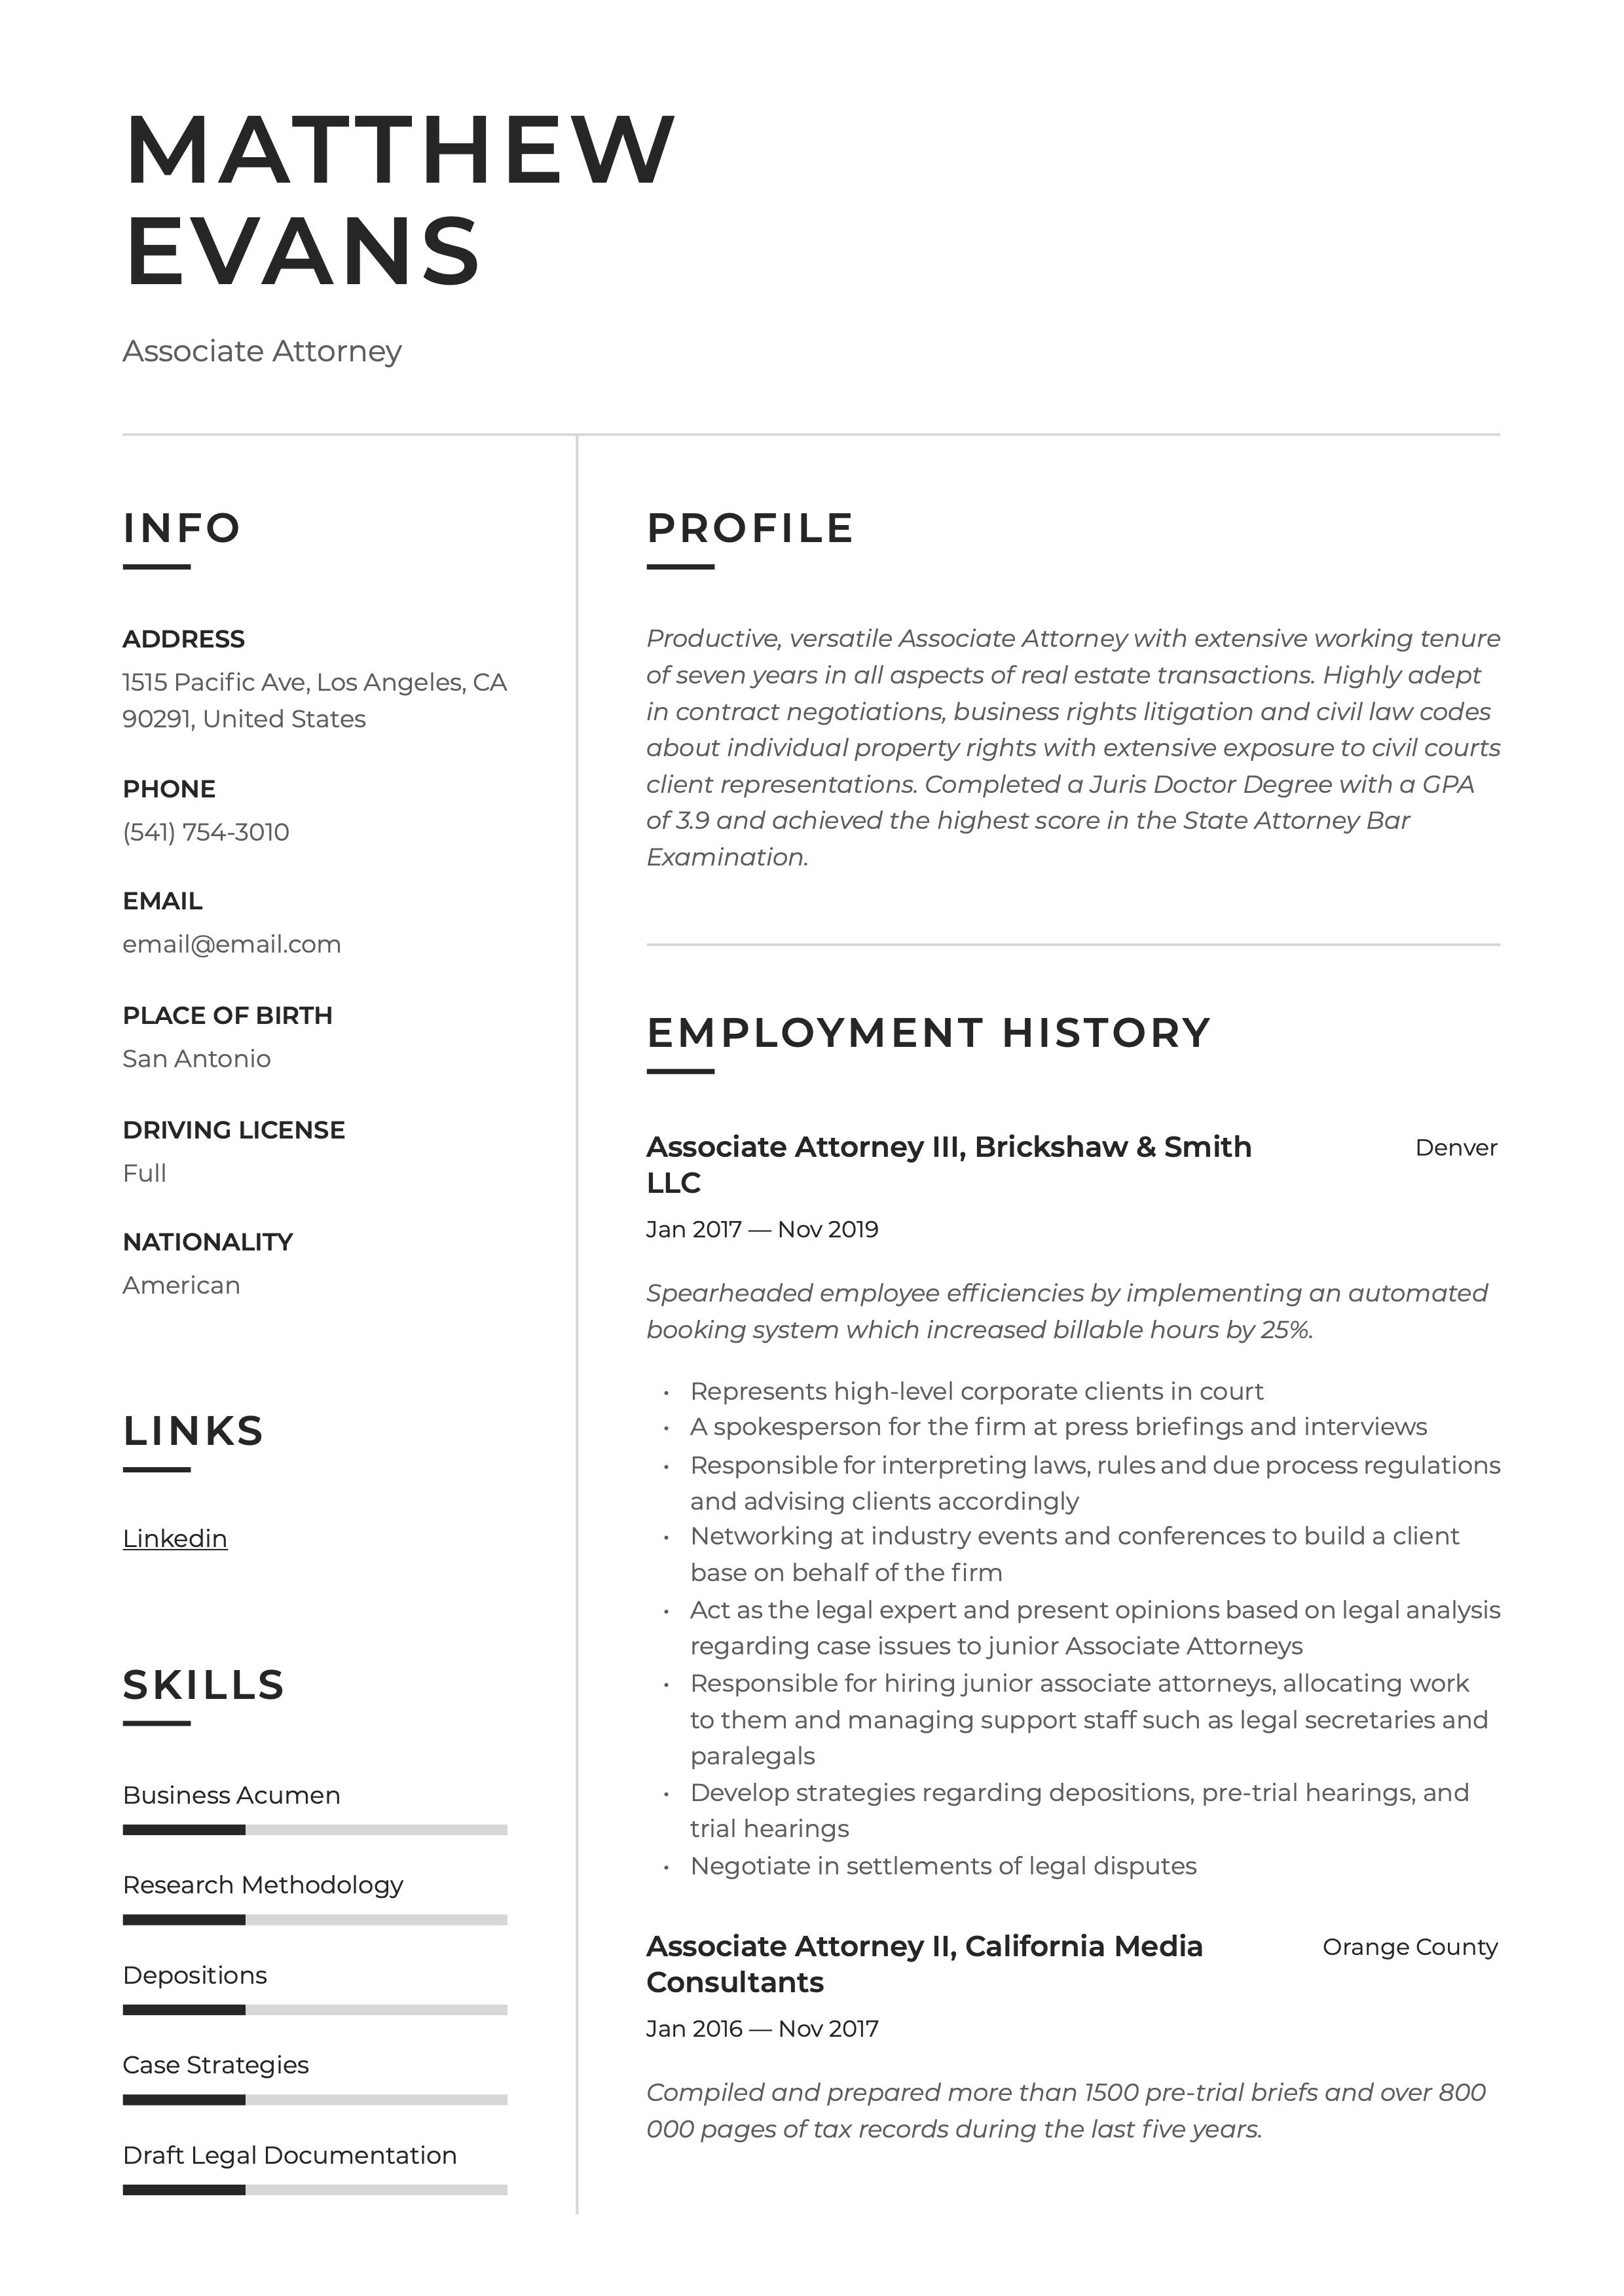 Associate Attorney Resume Sample In 2020 Executive Resume Resume Examples Resume Guide